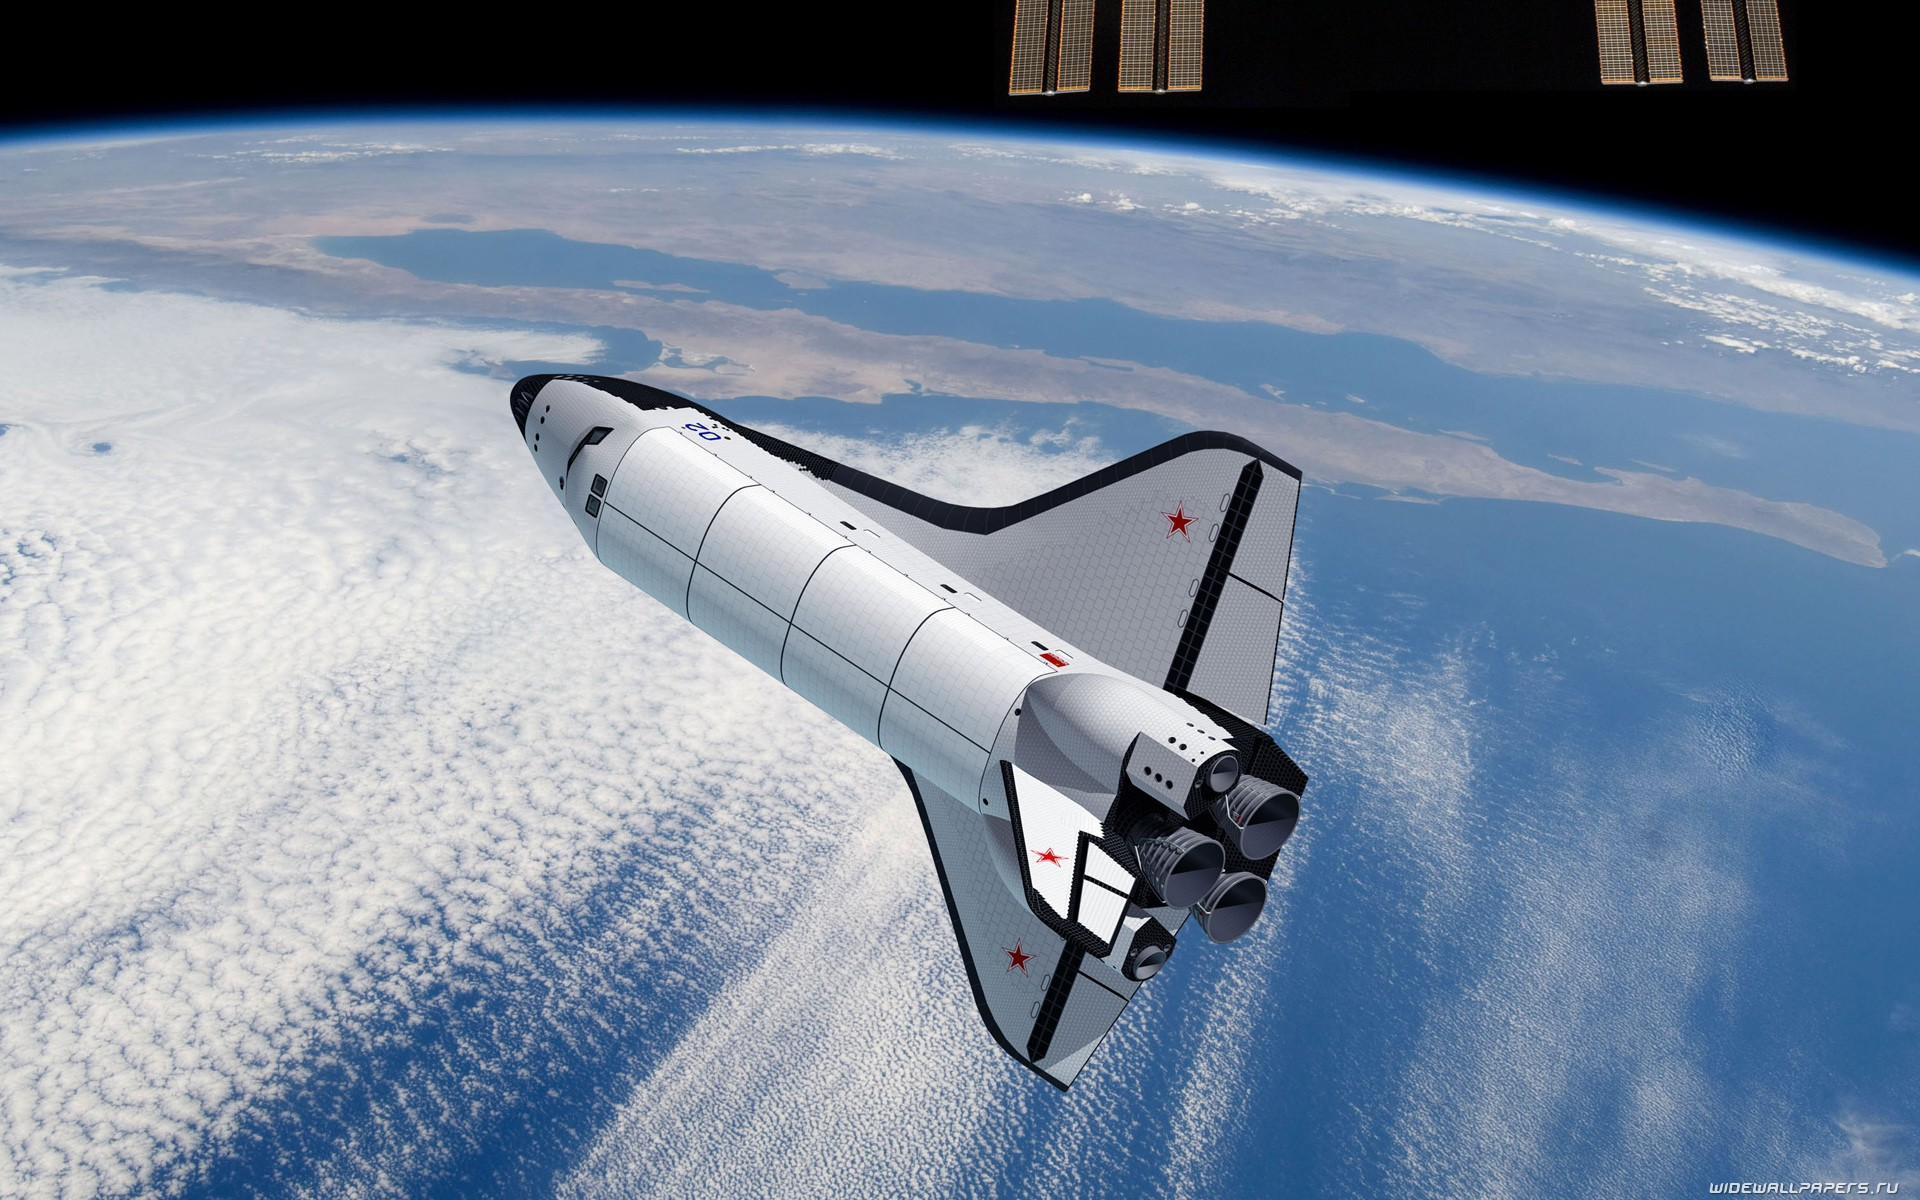 The spacecraft returns to Earth wallpapers and images - wallpapers ...